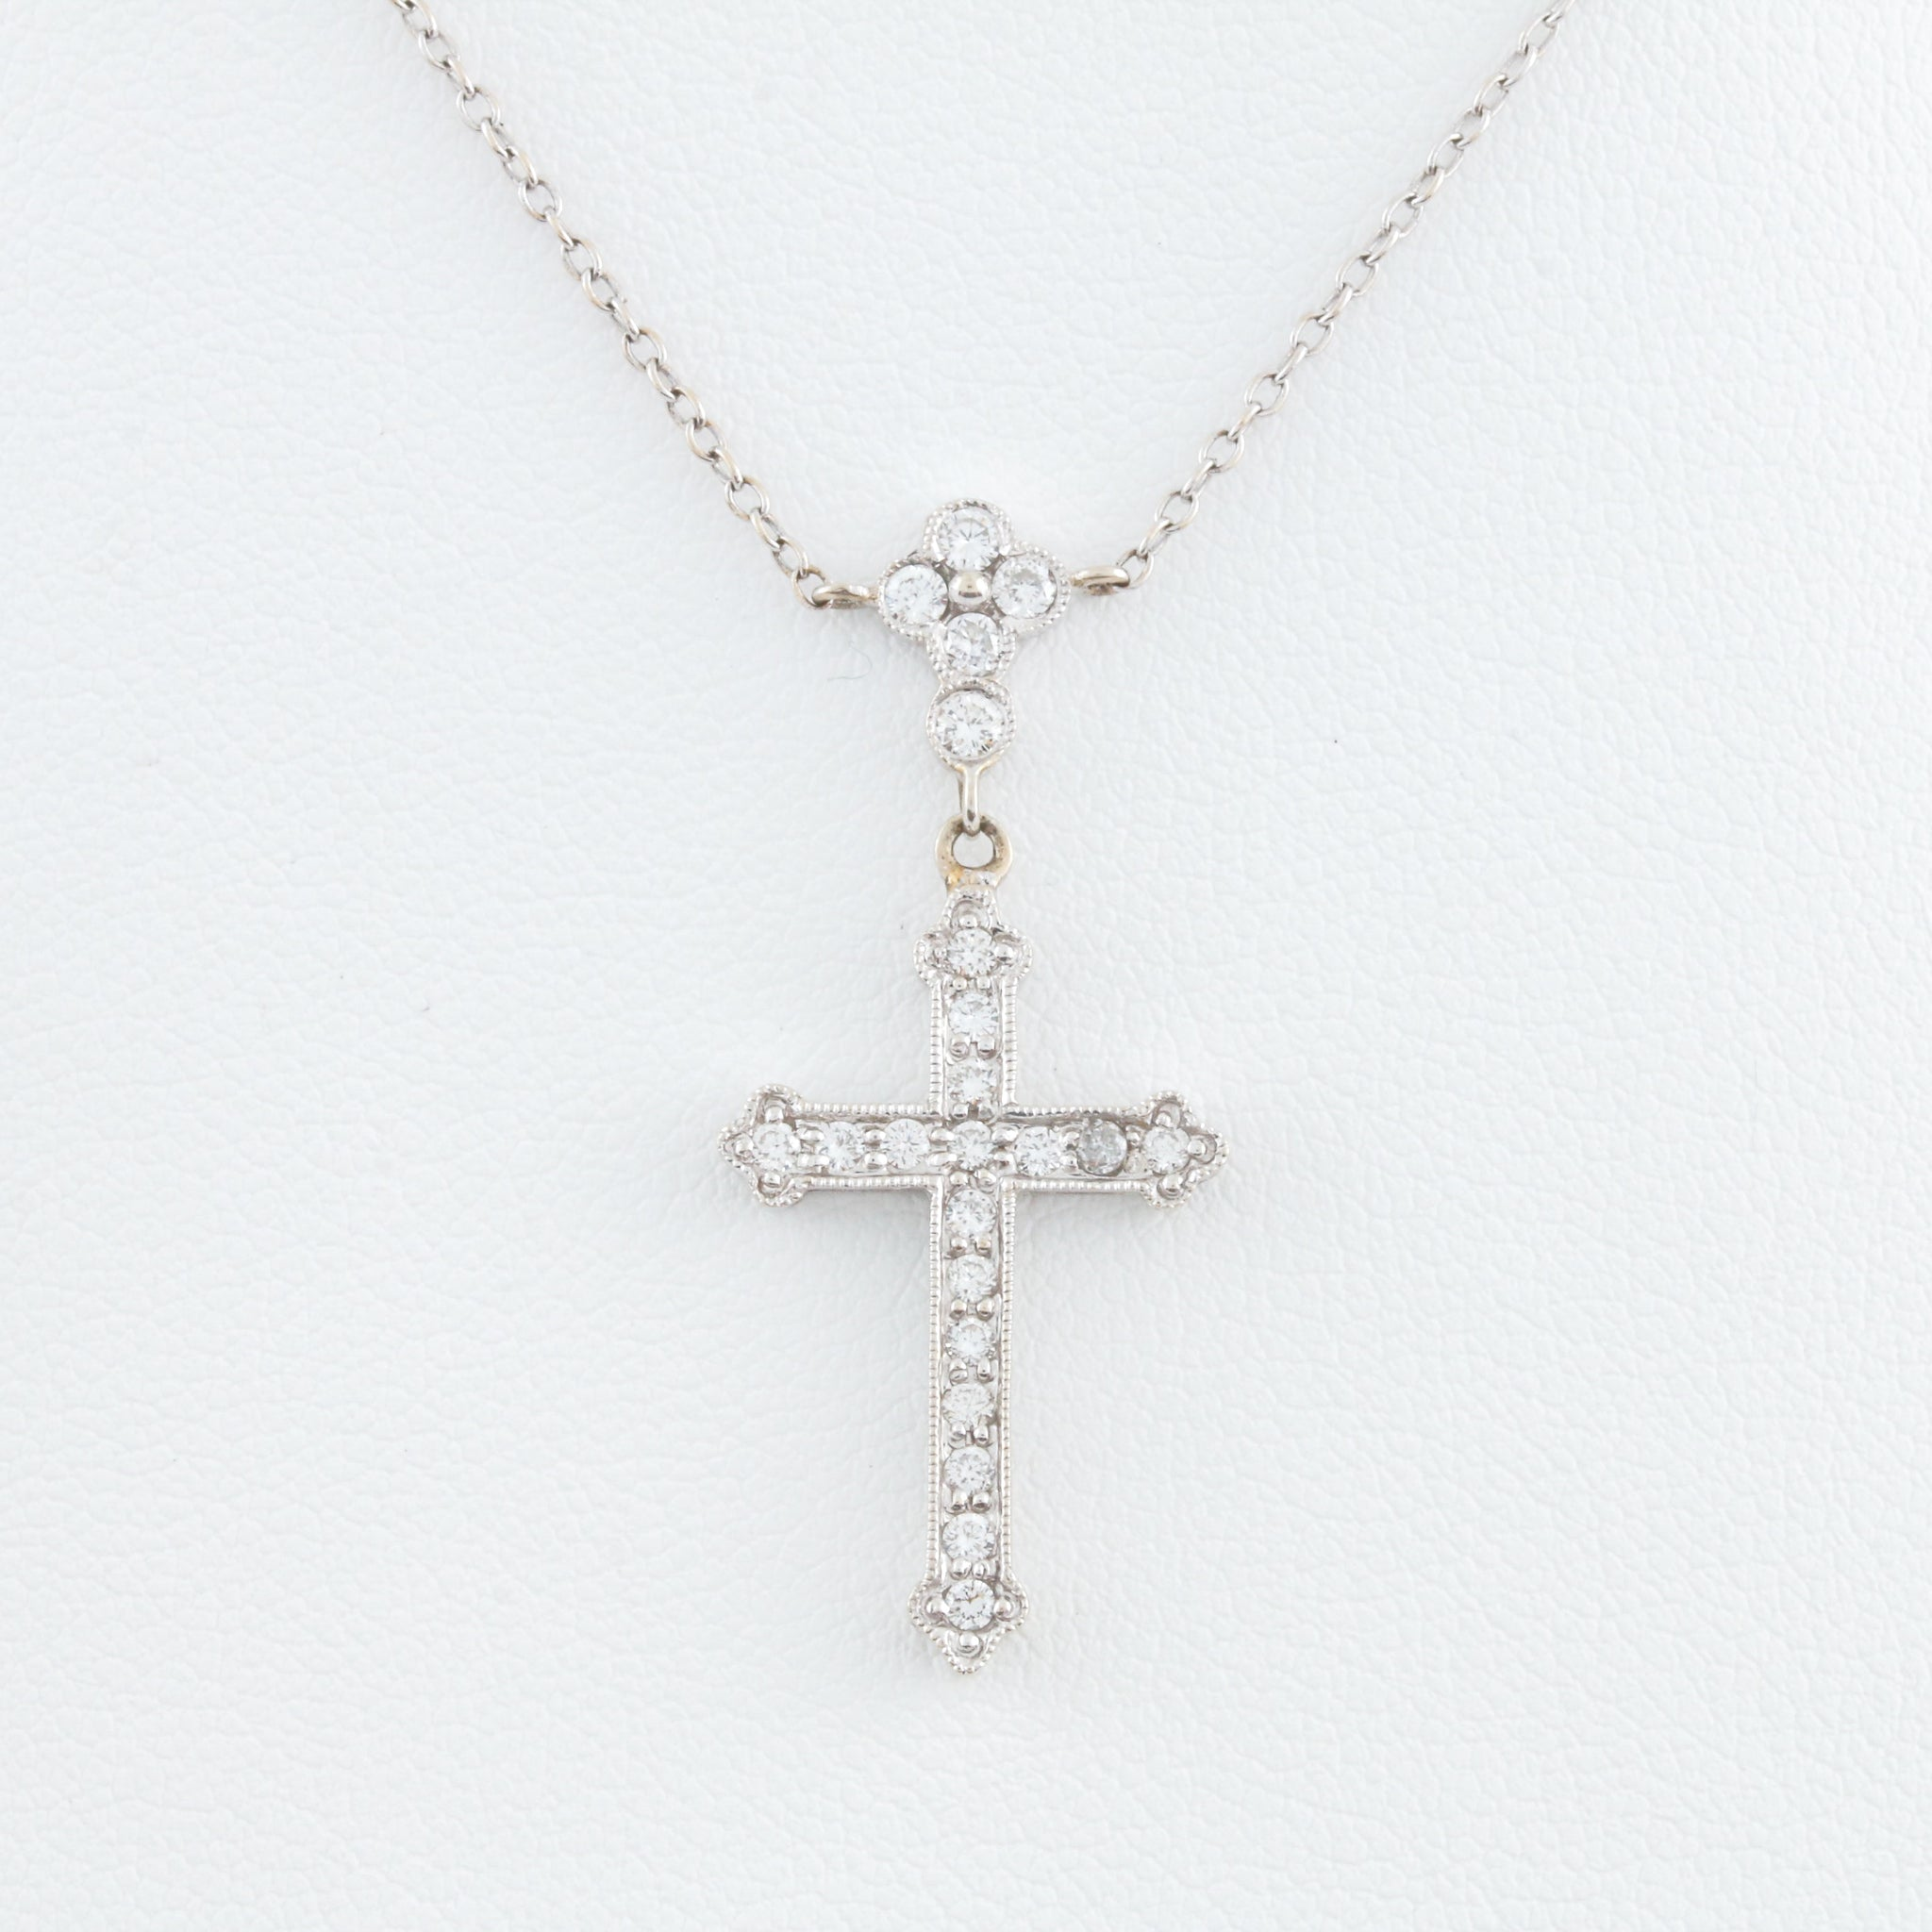 *SOLD* Diamonds in White Gold Cross Necklace - Sindur